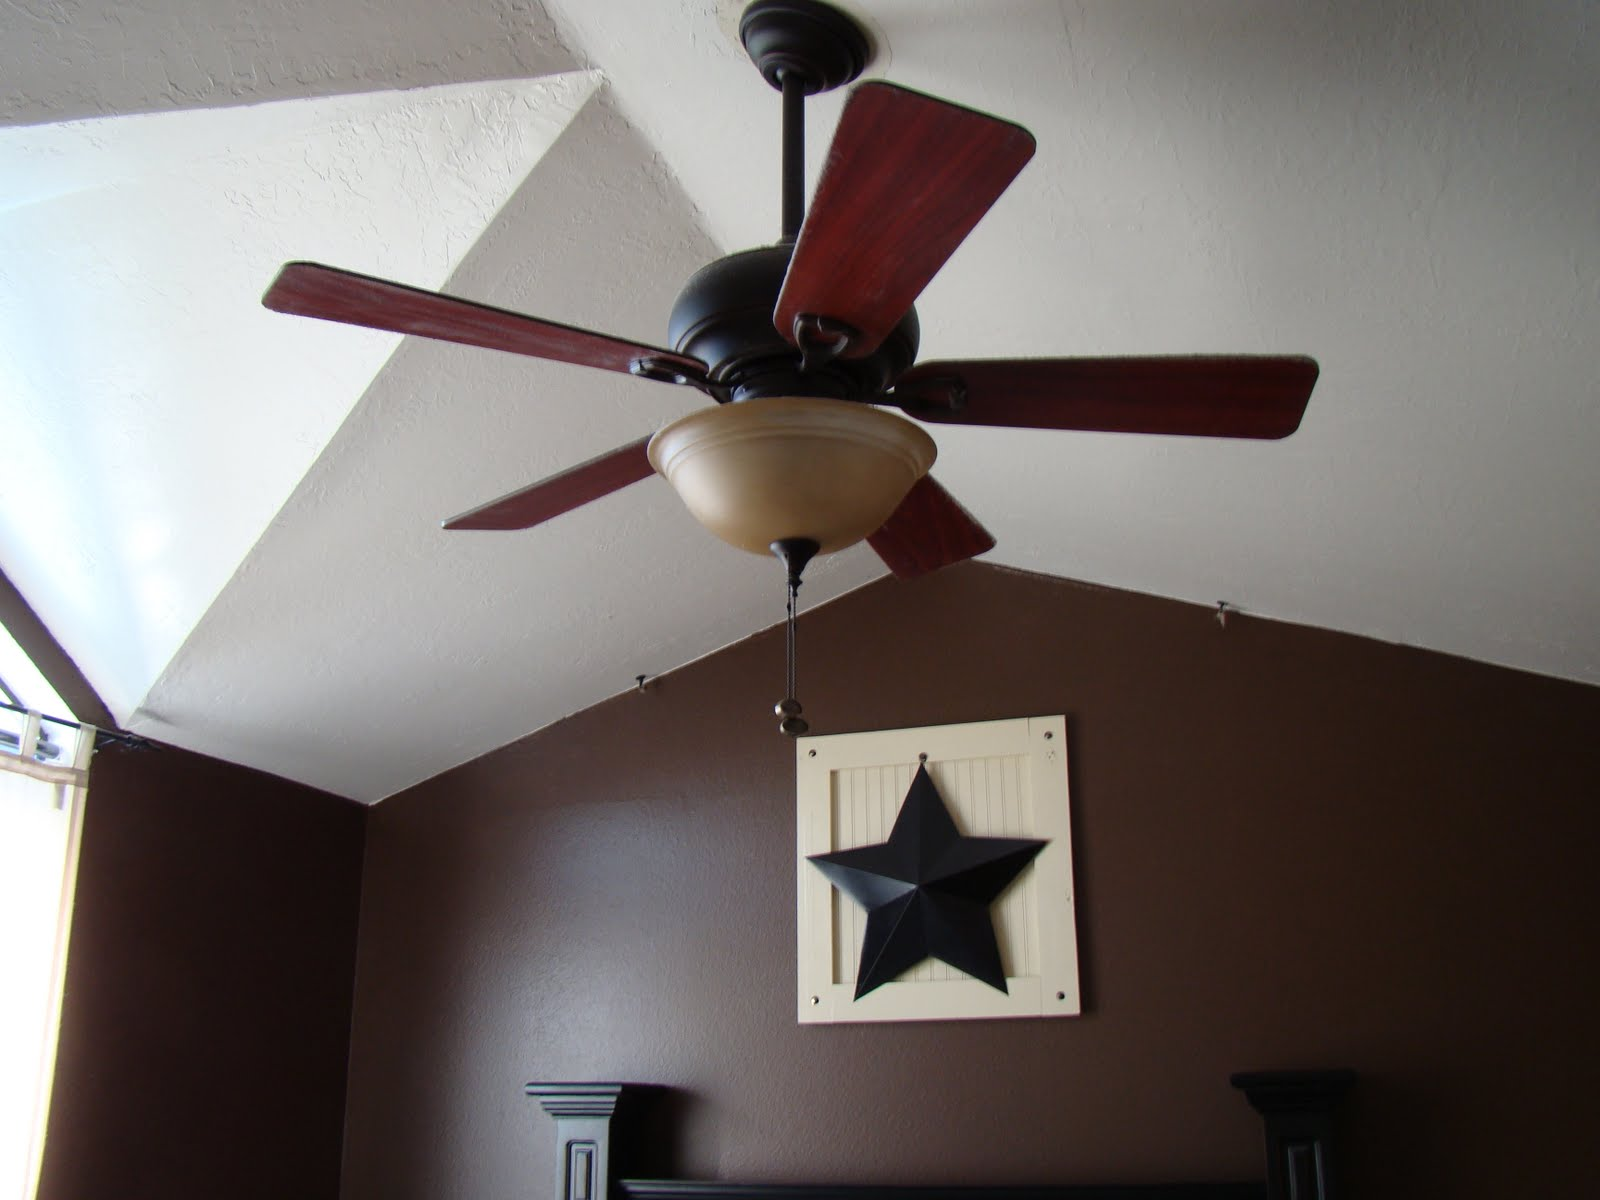 Guide on how to install ceiling fan on vaulted ceiling warisan ceiling fan on vaulted ceiling photo 4 mozeypictures Images